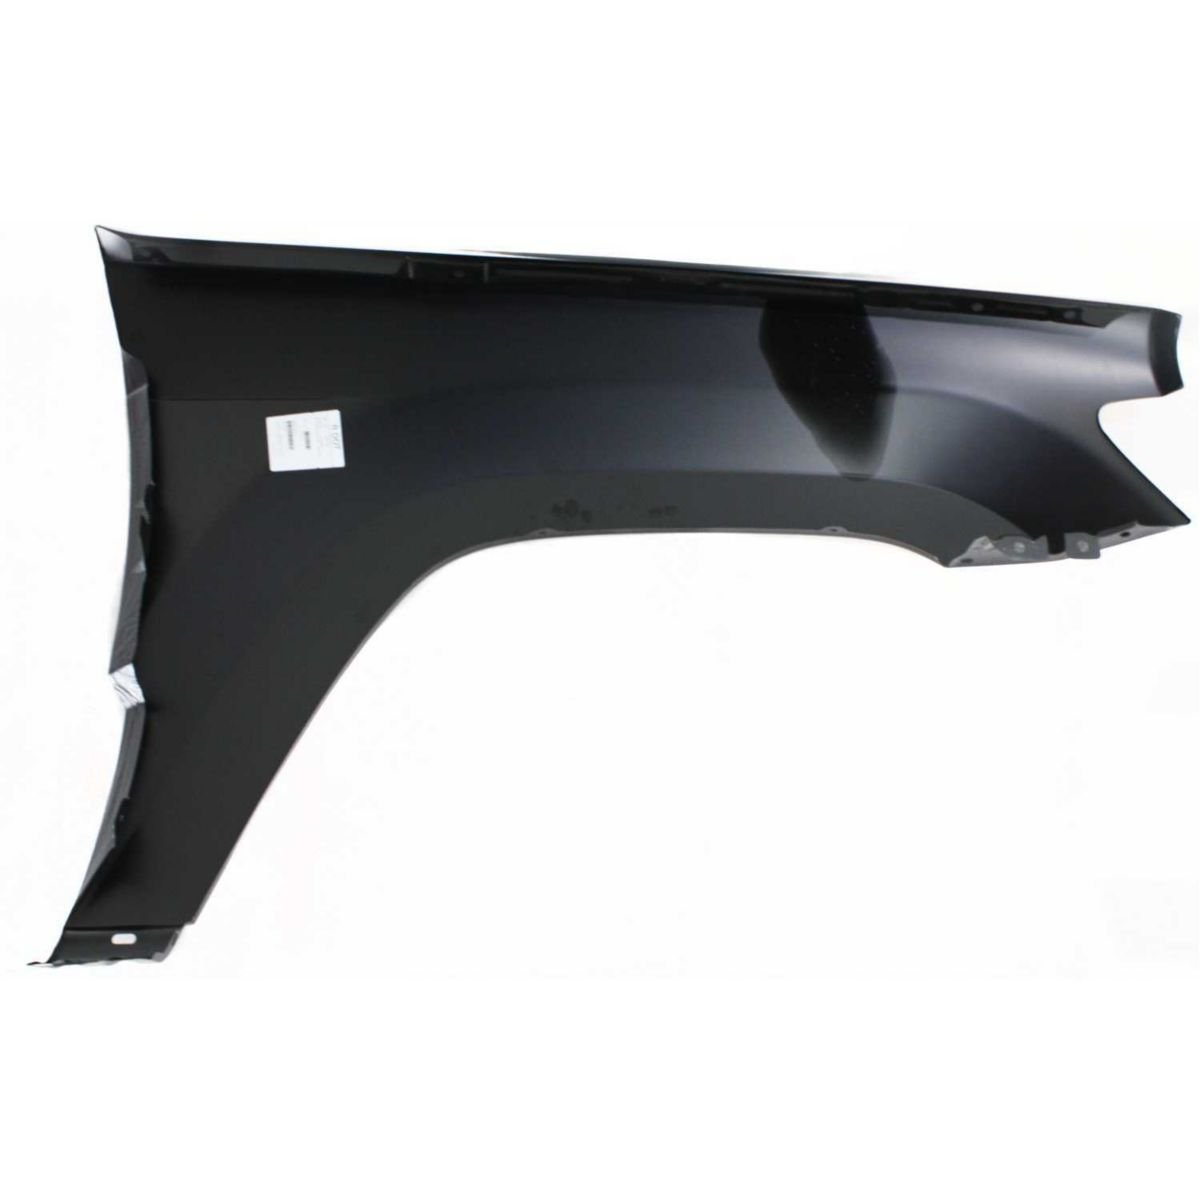 Make Auto Parts Manufacturing - Grand Cherokee 2005-2010 New Fender Front Quarter Panel Driver Left Side - CH1240242